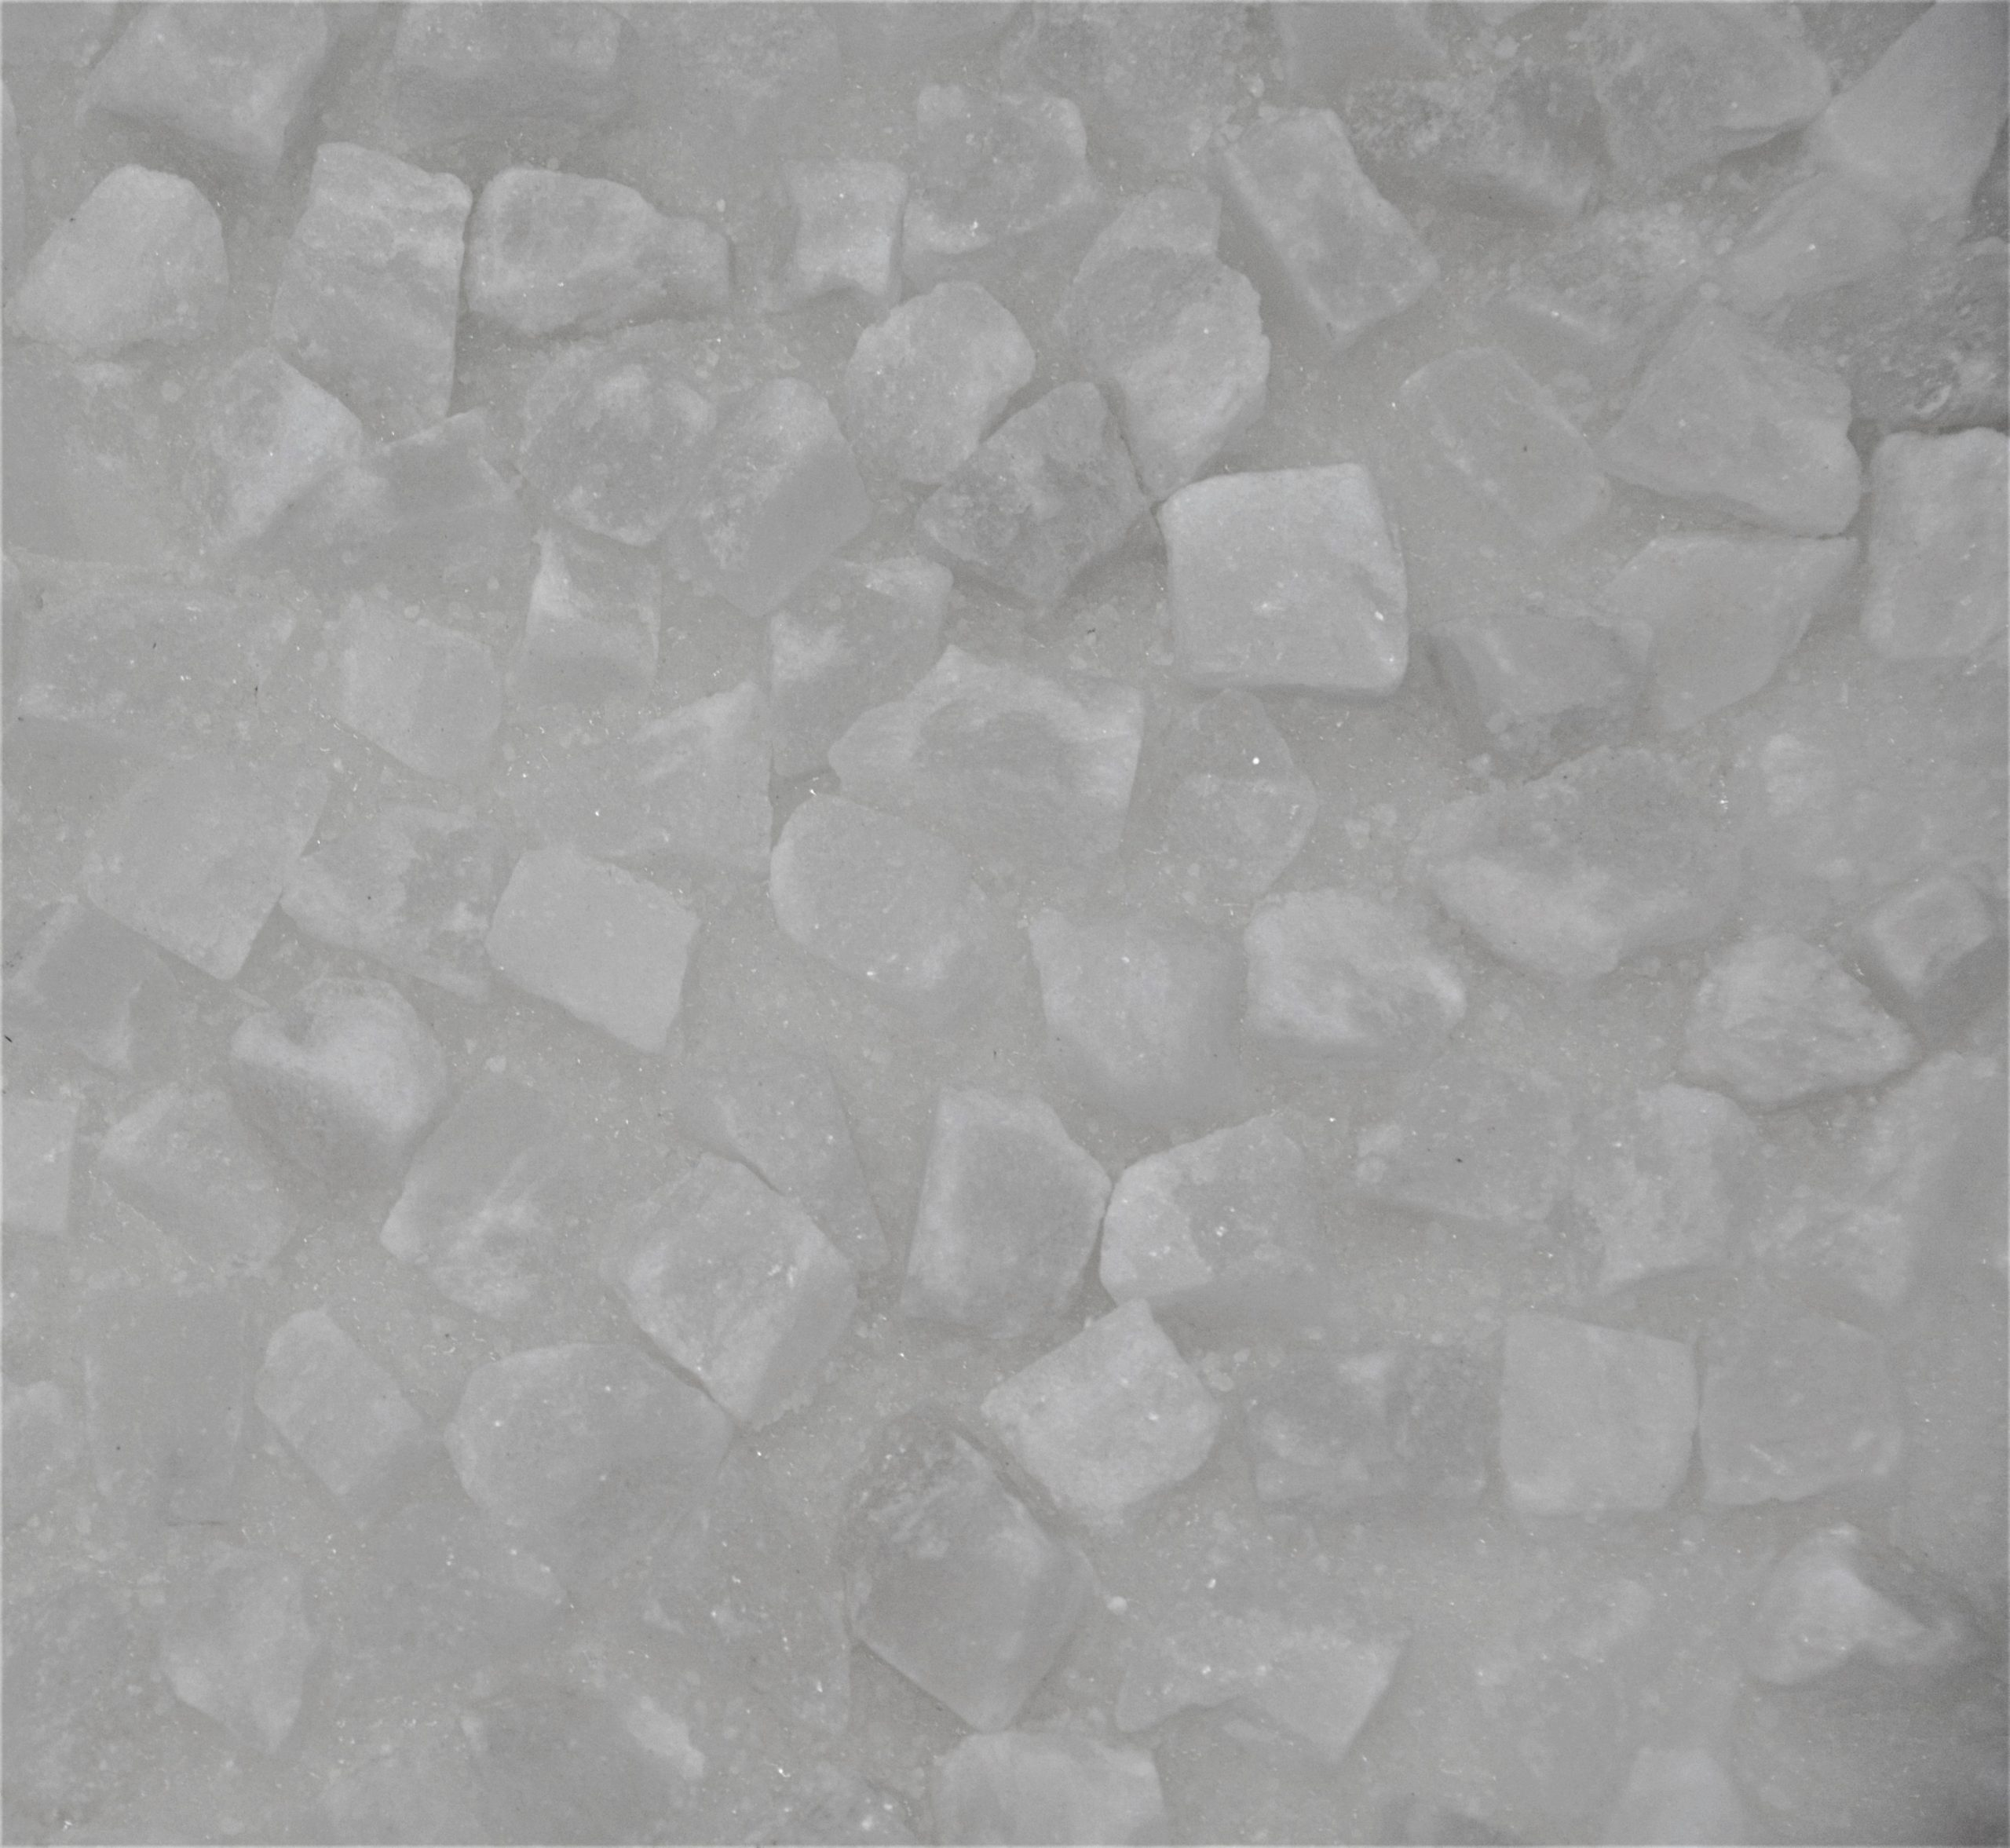 Clearance Panel White Chunk White Grain Qty 40 022621 scaled Himalayan Salt Panels   Inventory Clearance Sale!